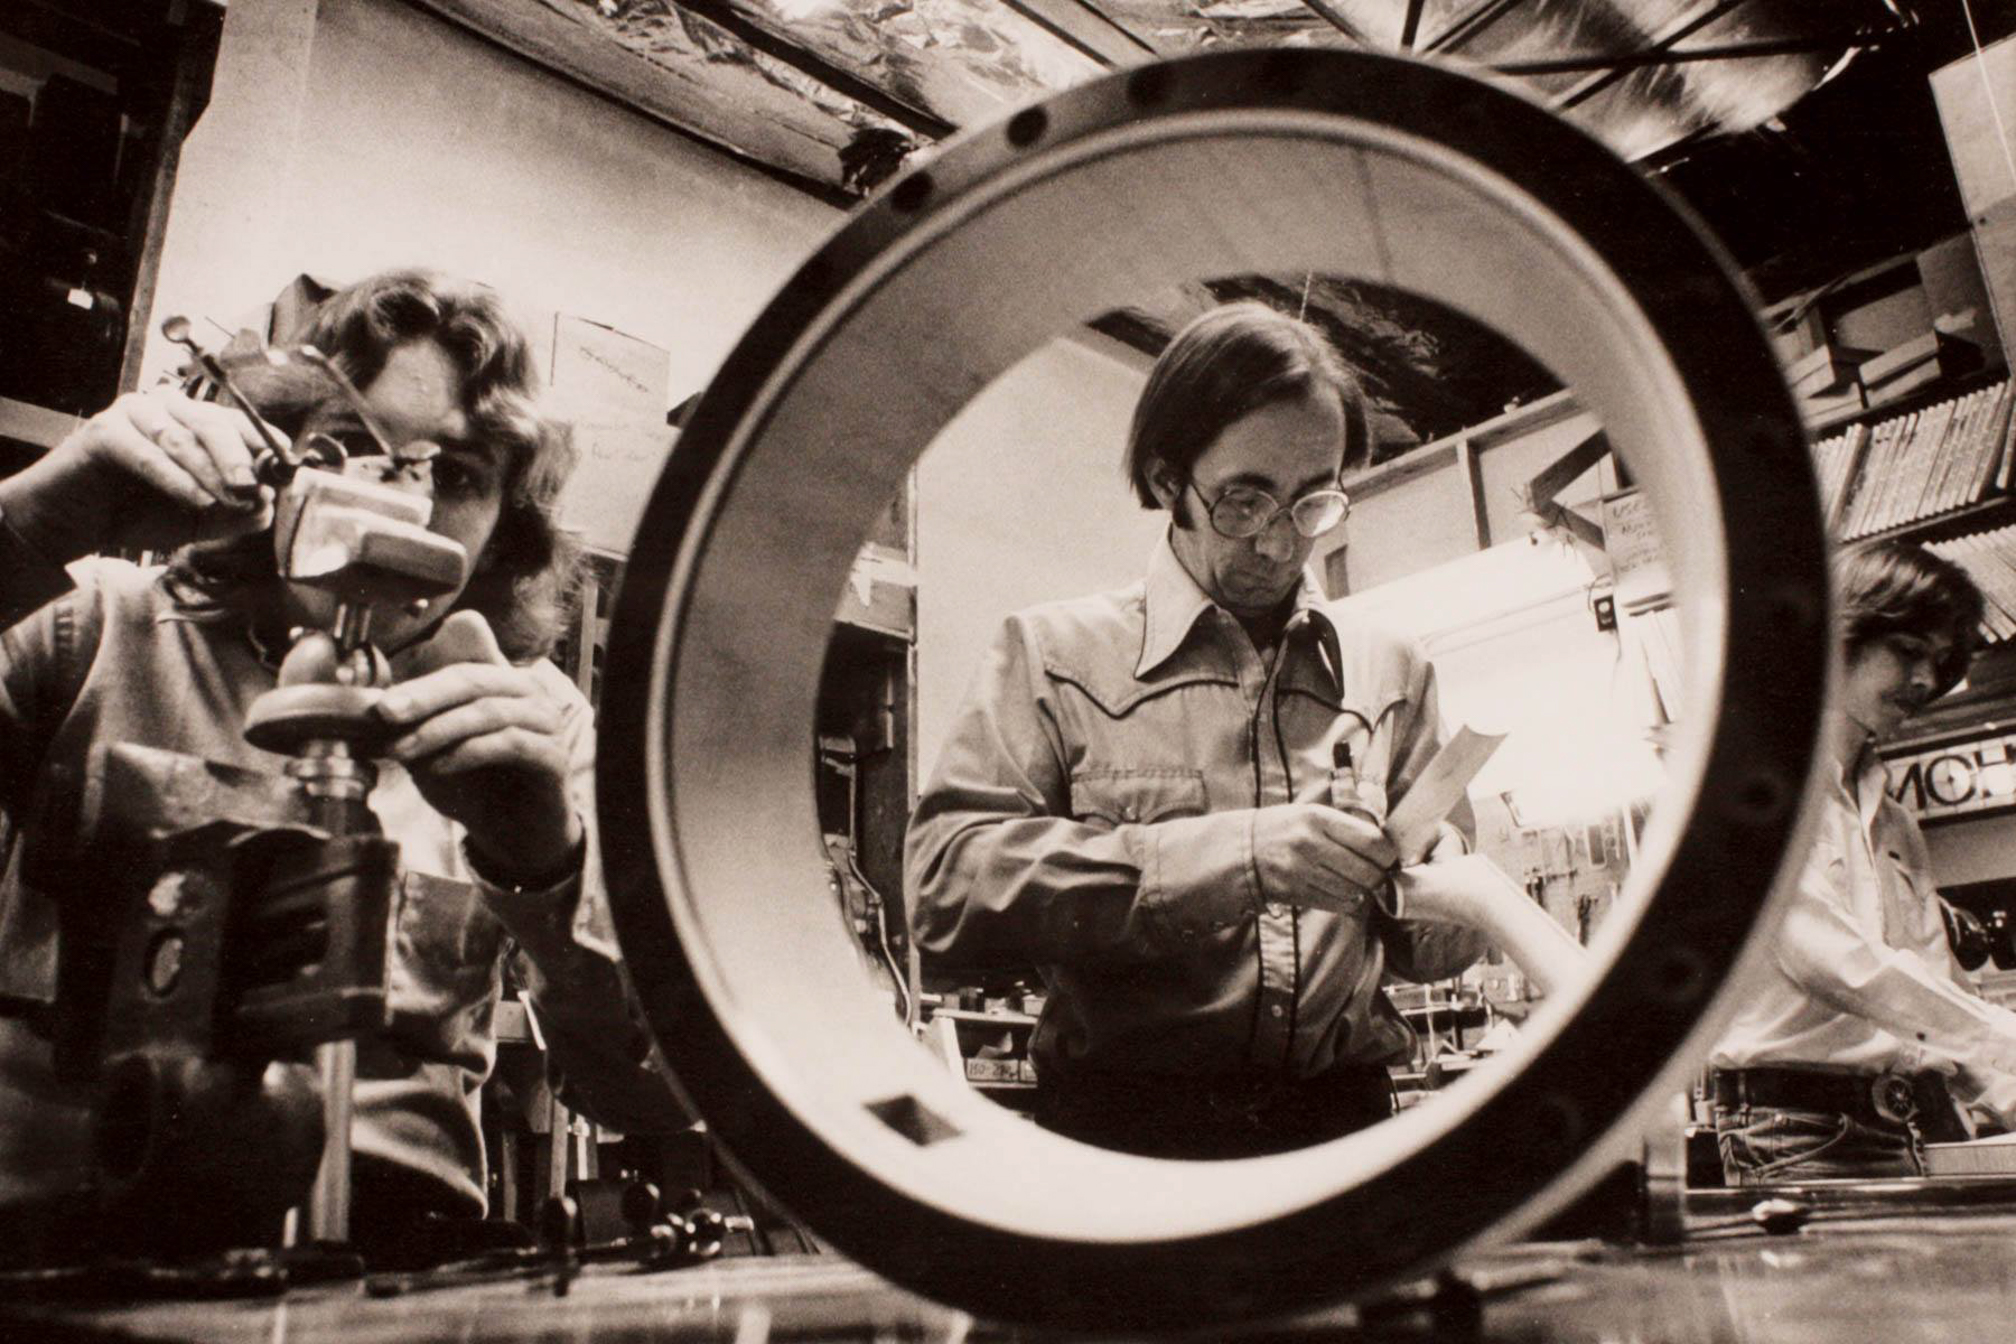 Frank Ford, center, and Richard Johnston, left, build a banjo together at Gryphon Stringed Instruments in Palo Alto during the 1980s. Photo courtesy Gryphon Stringed Instruments.